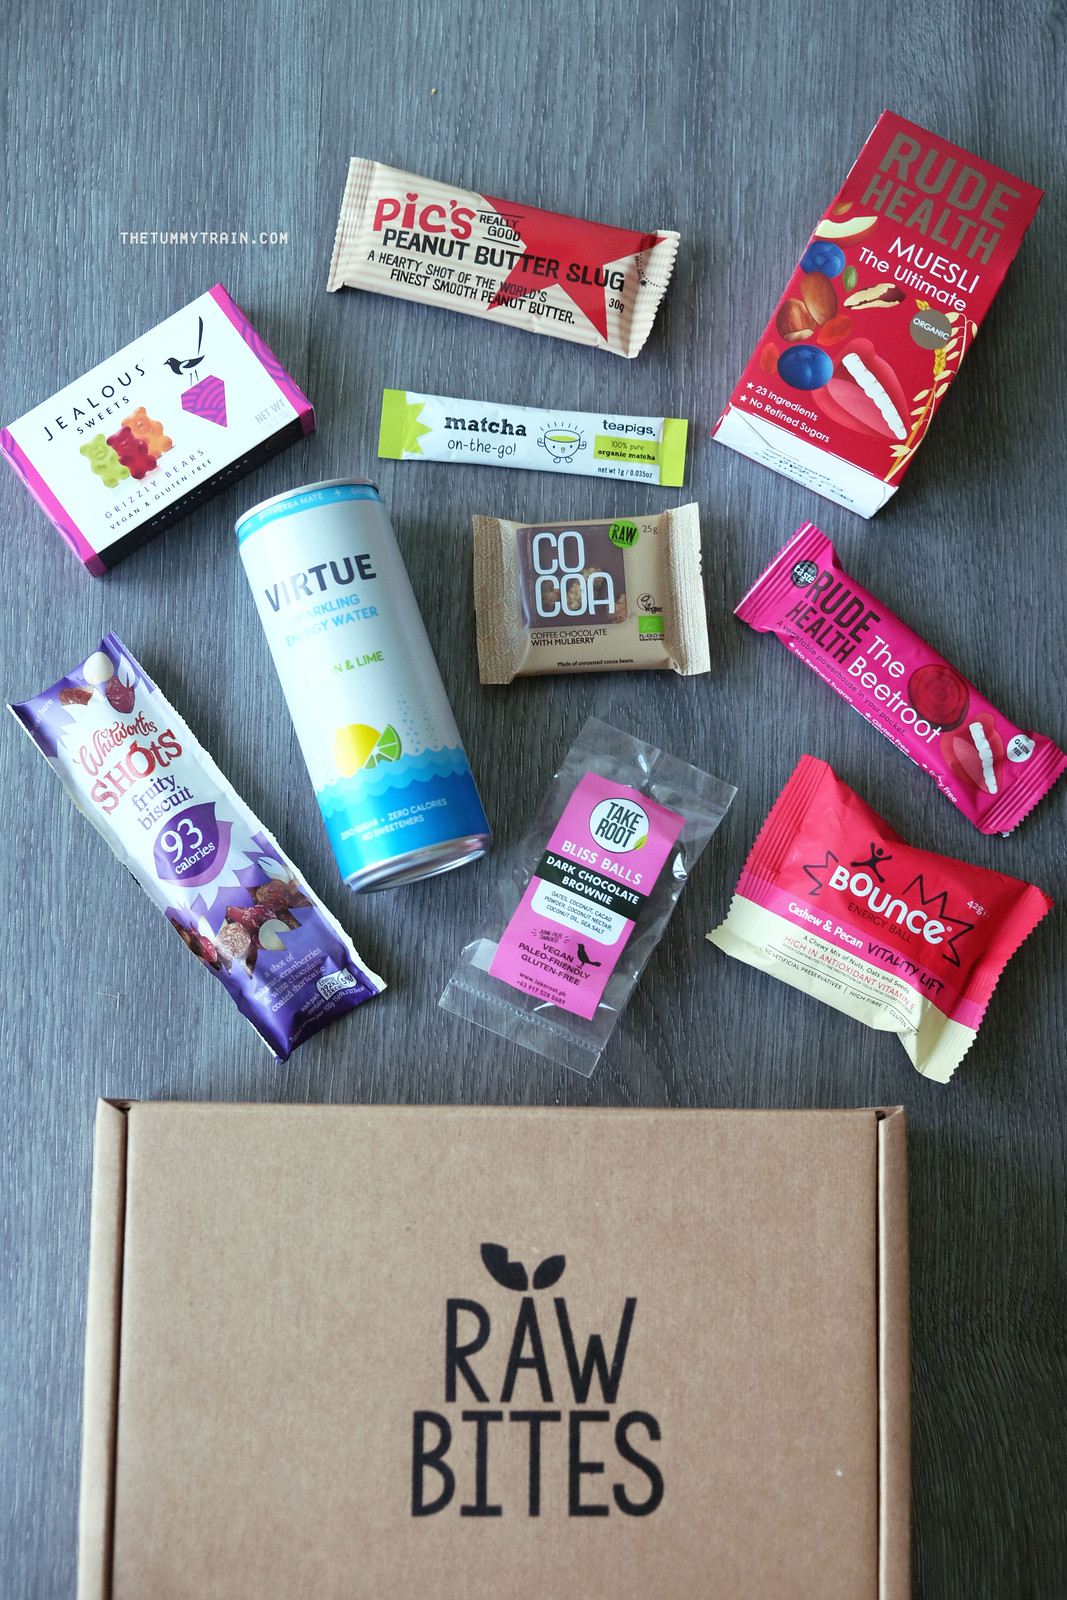 33967330713 0c54c339fc h - Unboxing + Review of the Raw Bites Healthy Snack Subscription Box